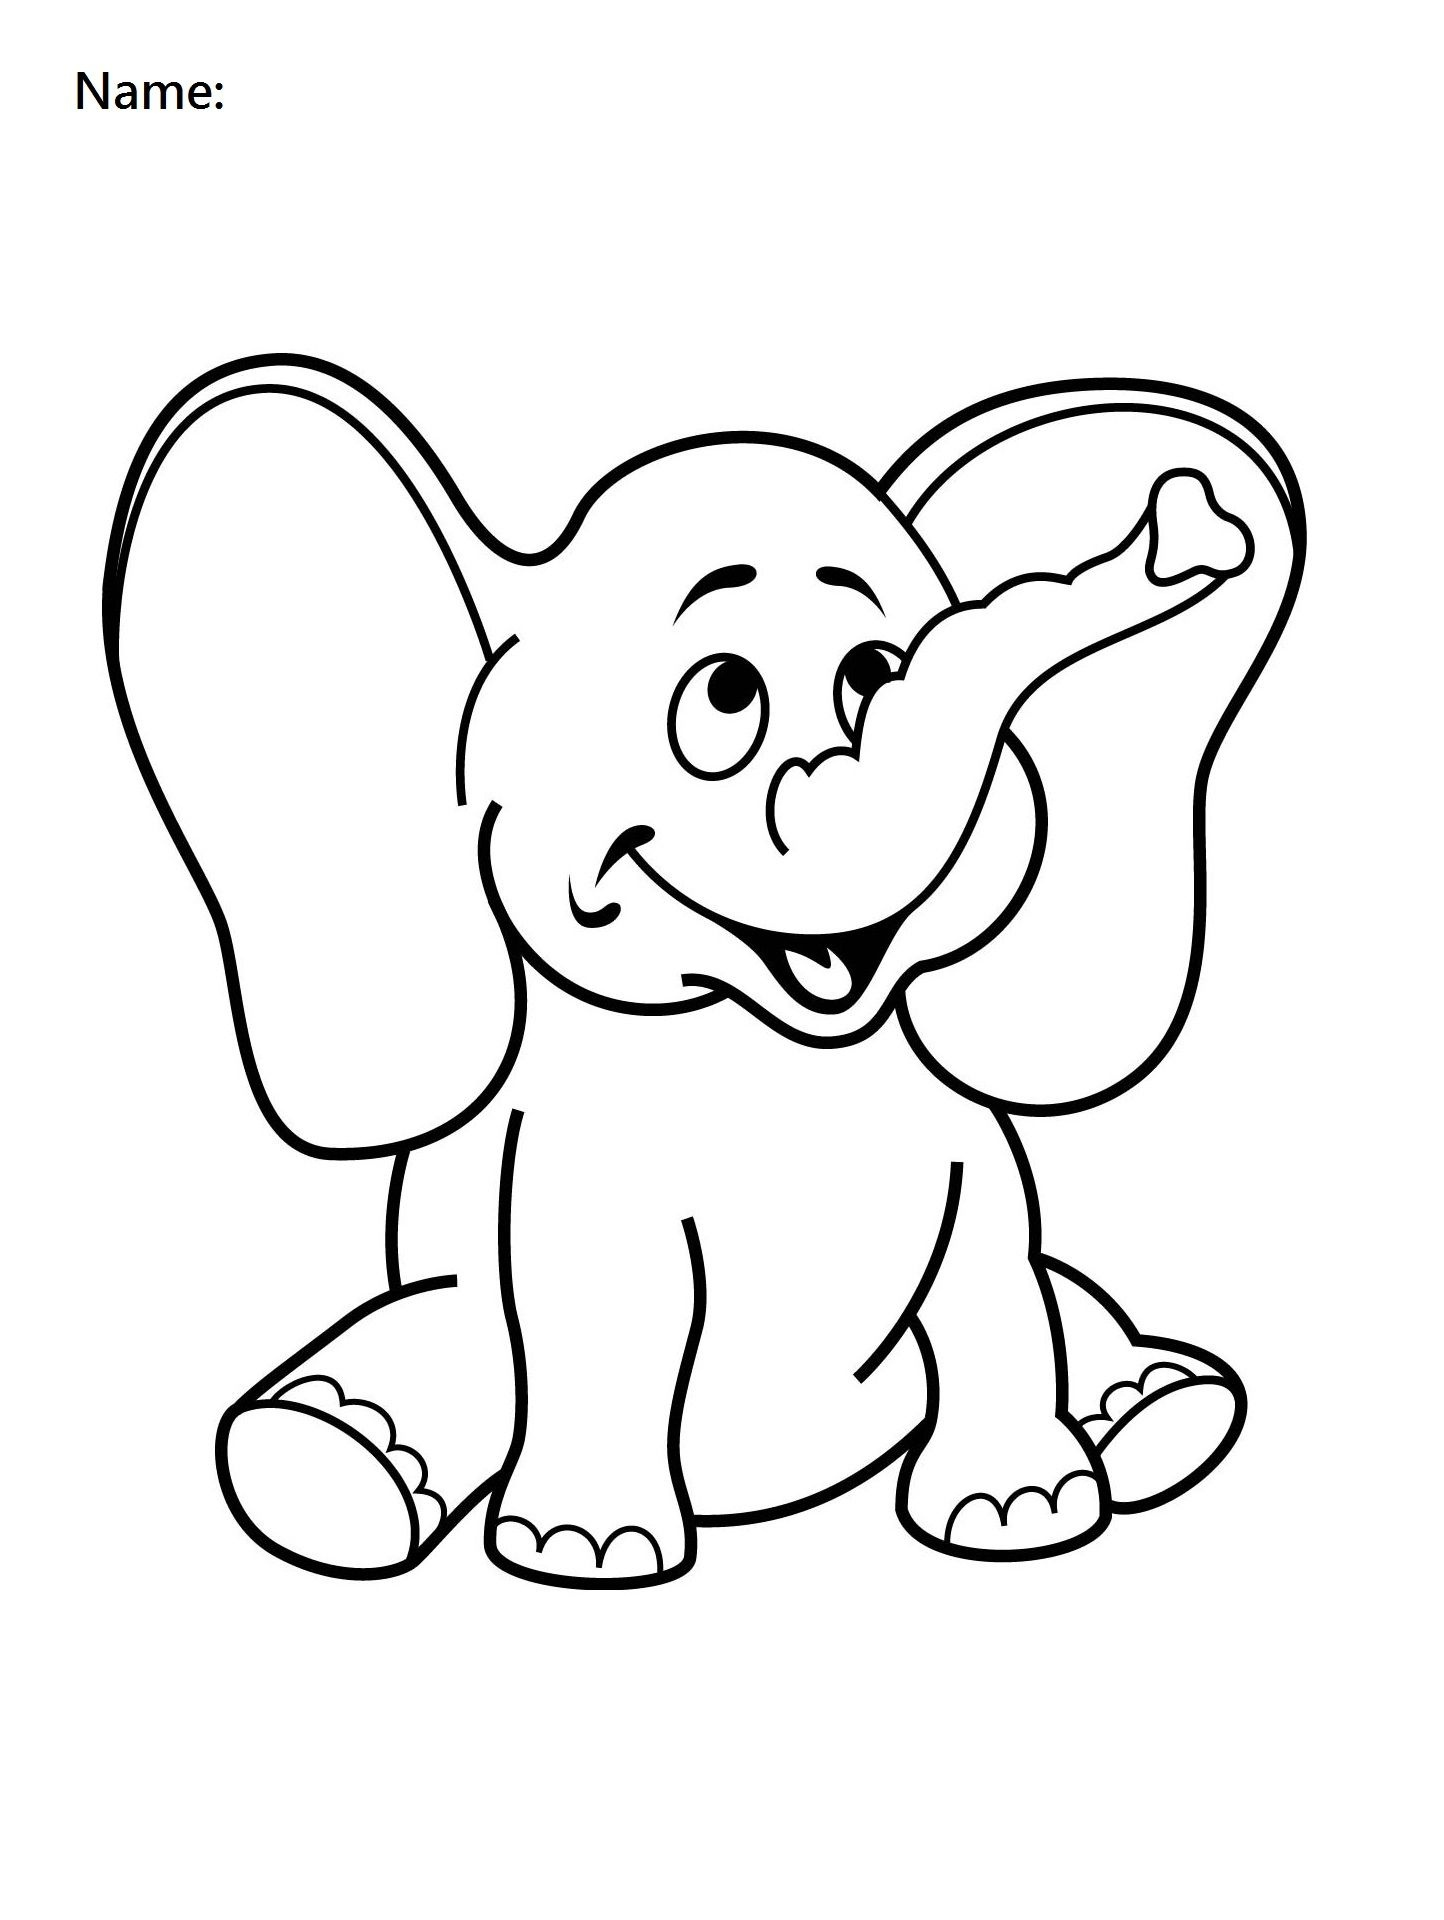 4 Year Old Worksheets Printable Coloring Elephant | Preschool - Free Printable Coloring Pages For 2 Year Olds